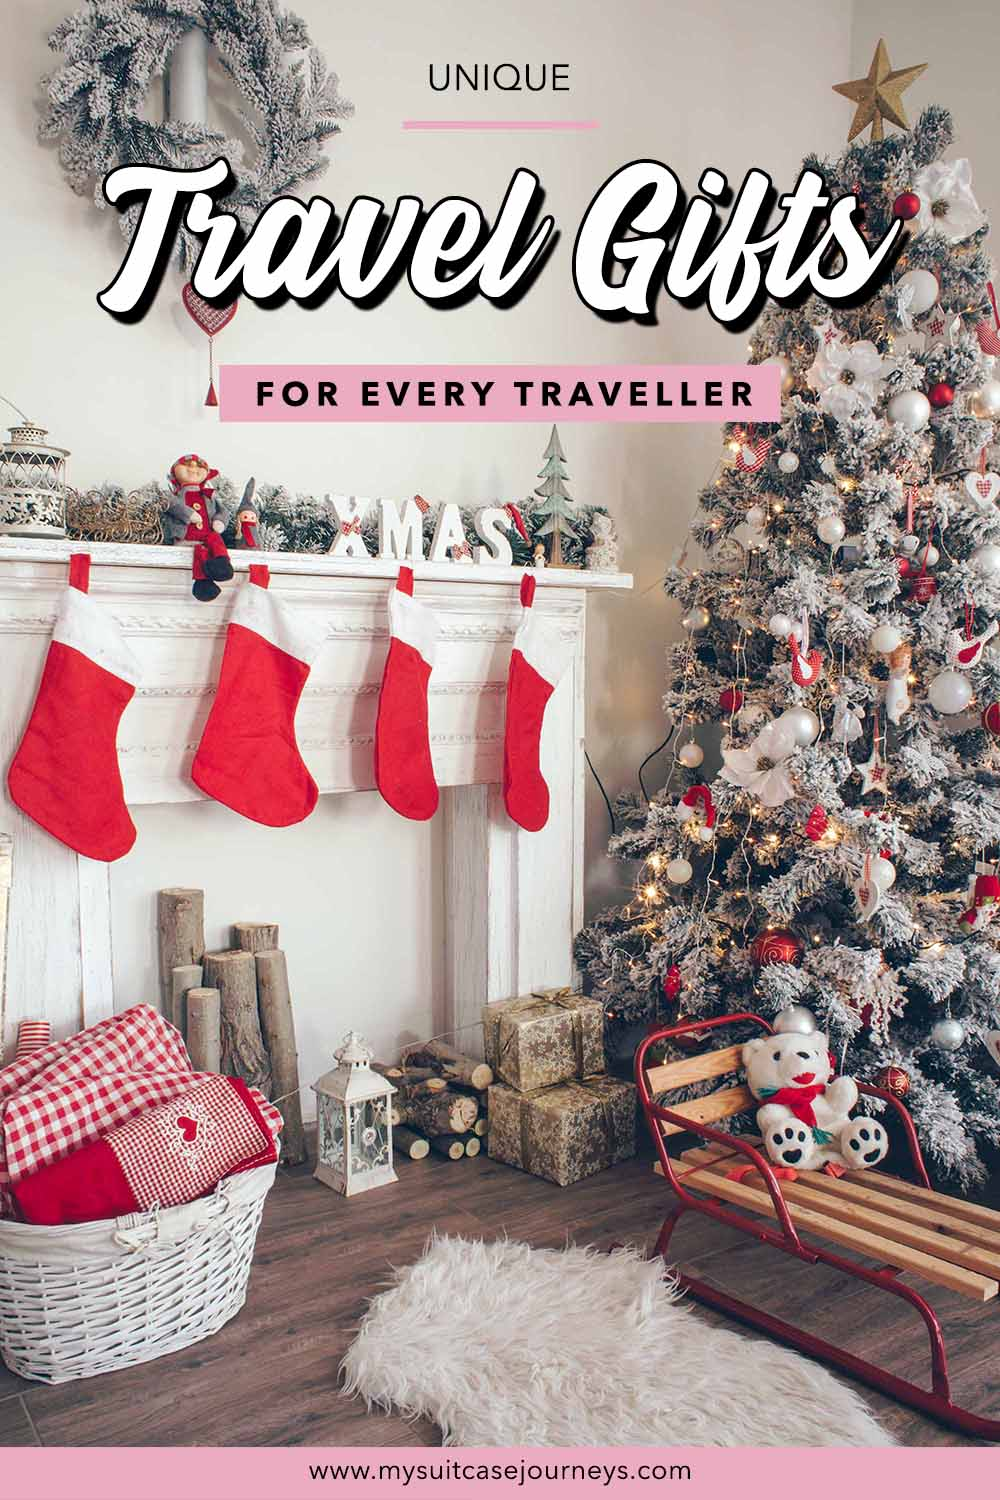 Don't wait until last minute to get your Christmas shopping done this year. Make gift-giving stress-free with these unique travel gift ideas!